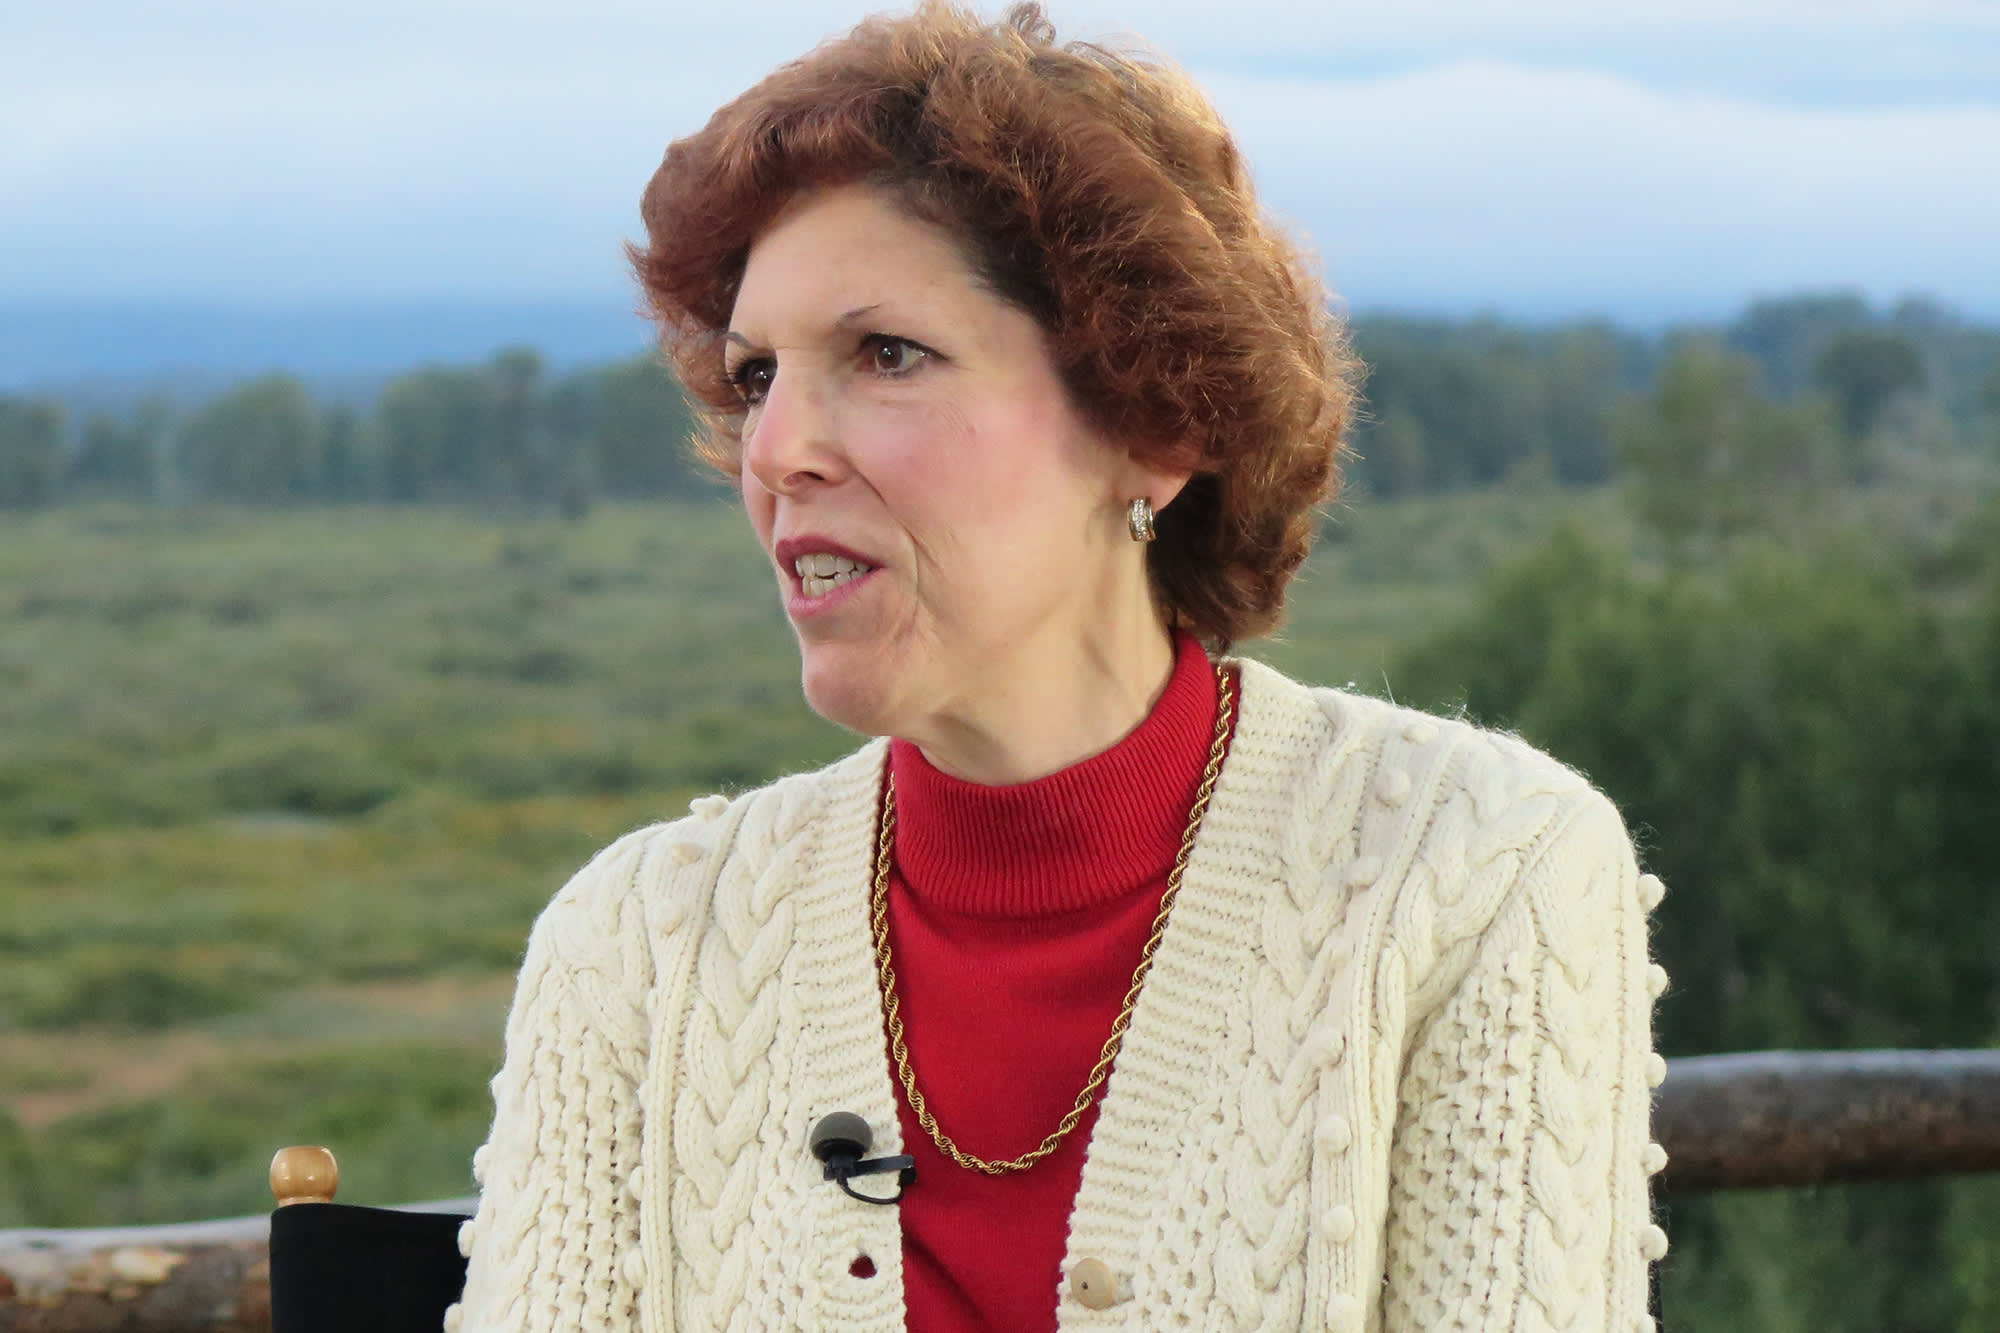 Fed's Mester calls for changes in how rate decisions are communicated